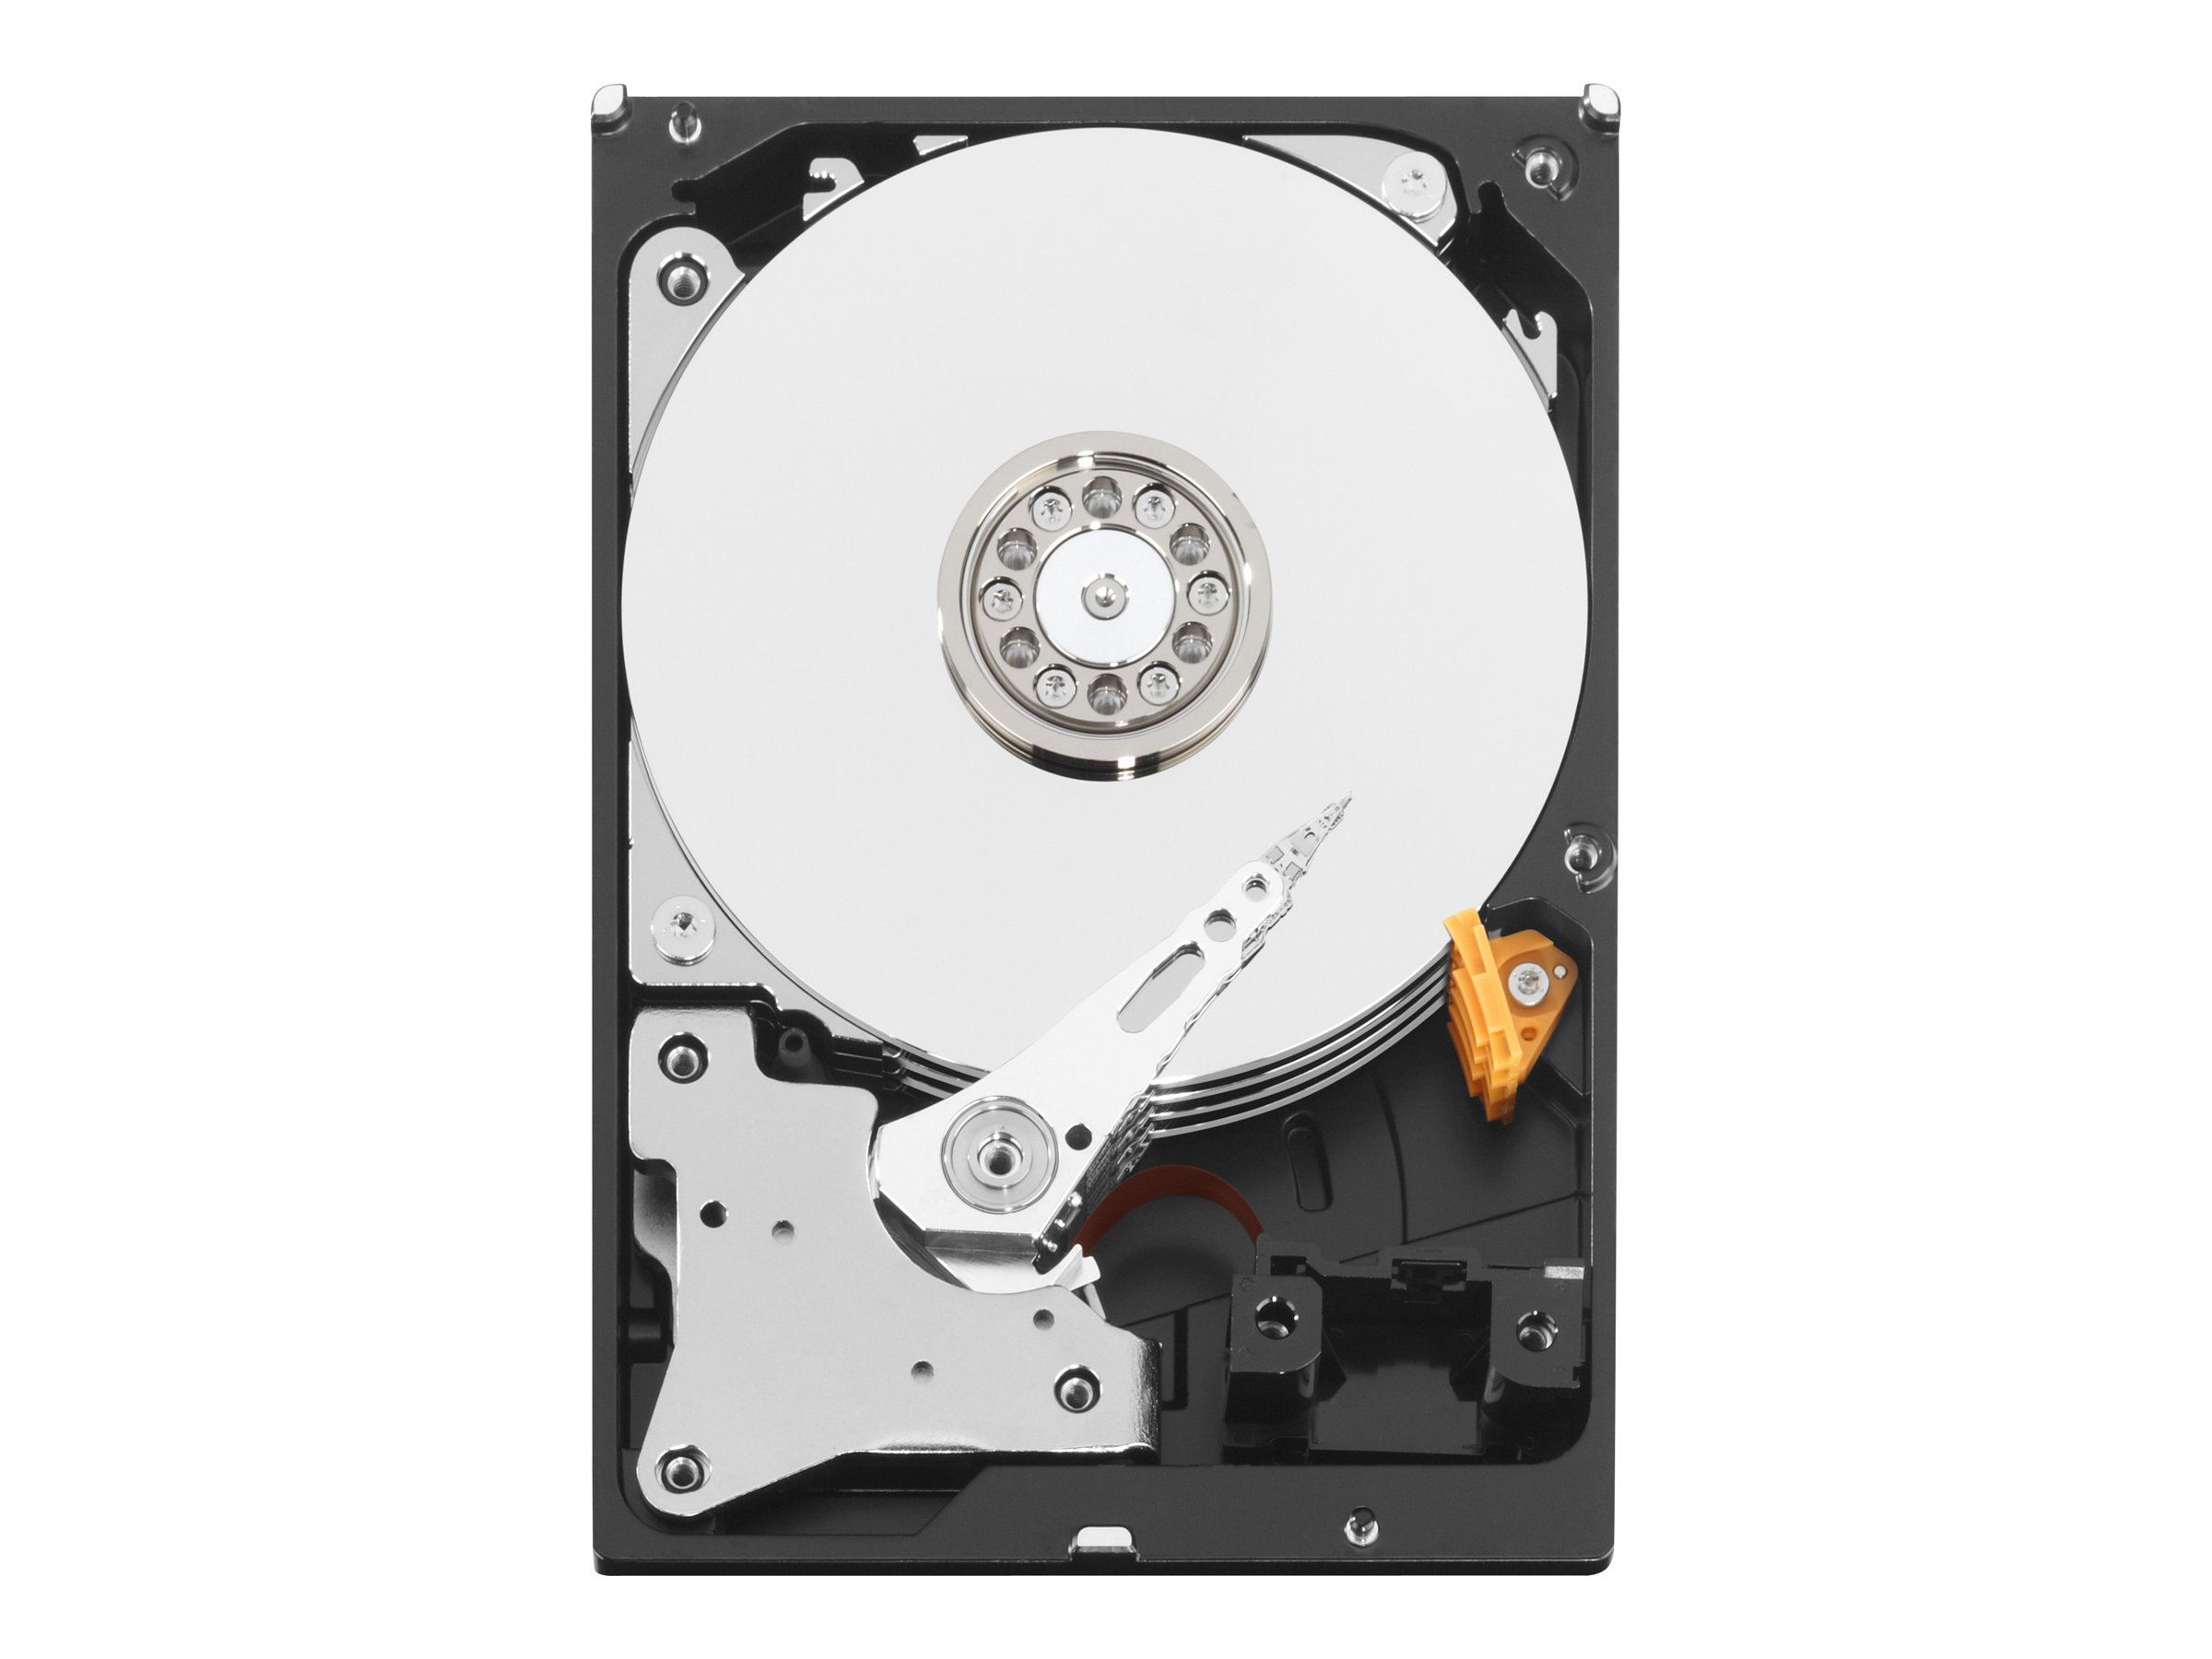 WD Red Plus NAS Hard Drive WD10EFRX - hard drive - 1 TB - SATA 6Gb/s (pack of 20)